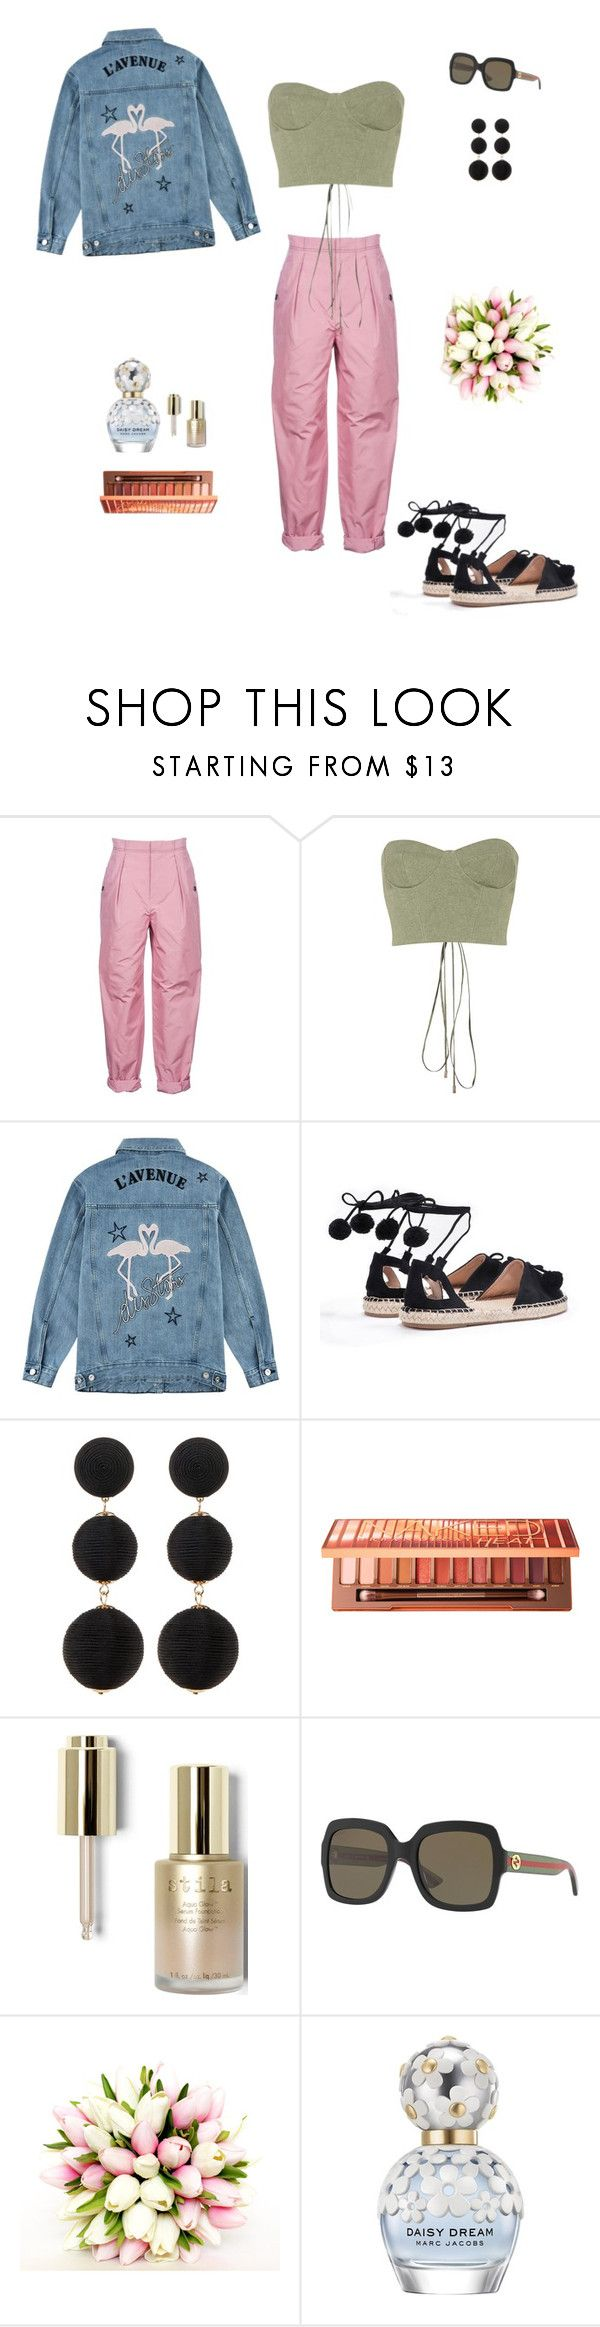 """💕"" by sofiakub ❤ liked on Polyvore featuring Bottega Veneta, Off-White, Être Cécile, Nasty Gal, Cara Accessories, Urban Decay, Stila, Gucci and Marc Jacobs"